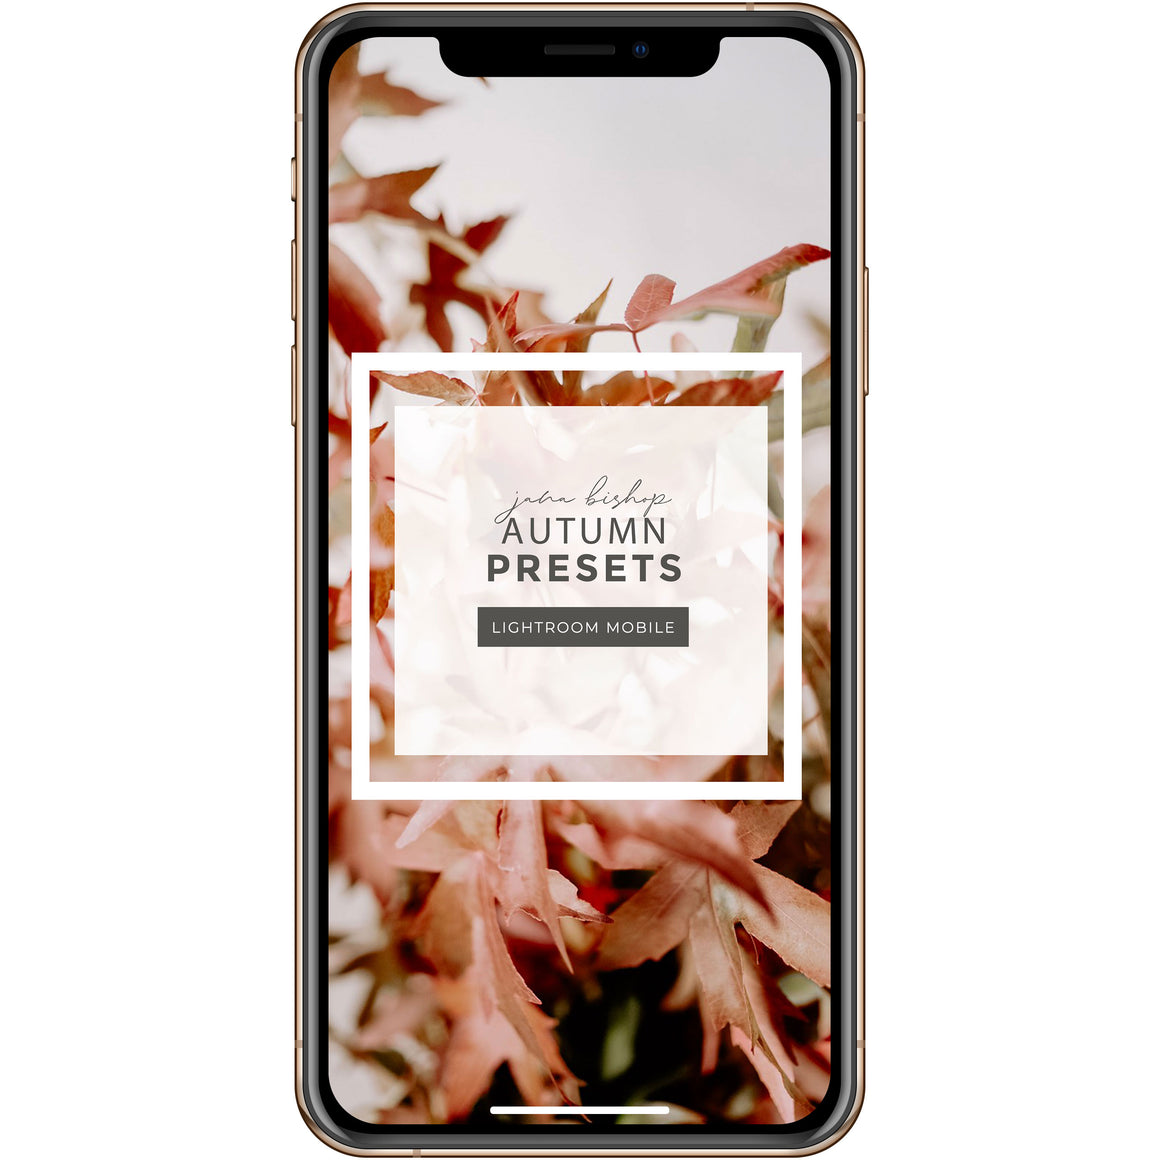 JBC Autumn Presets | Mobile